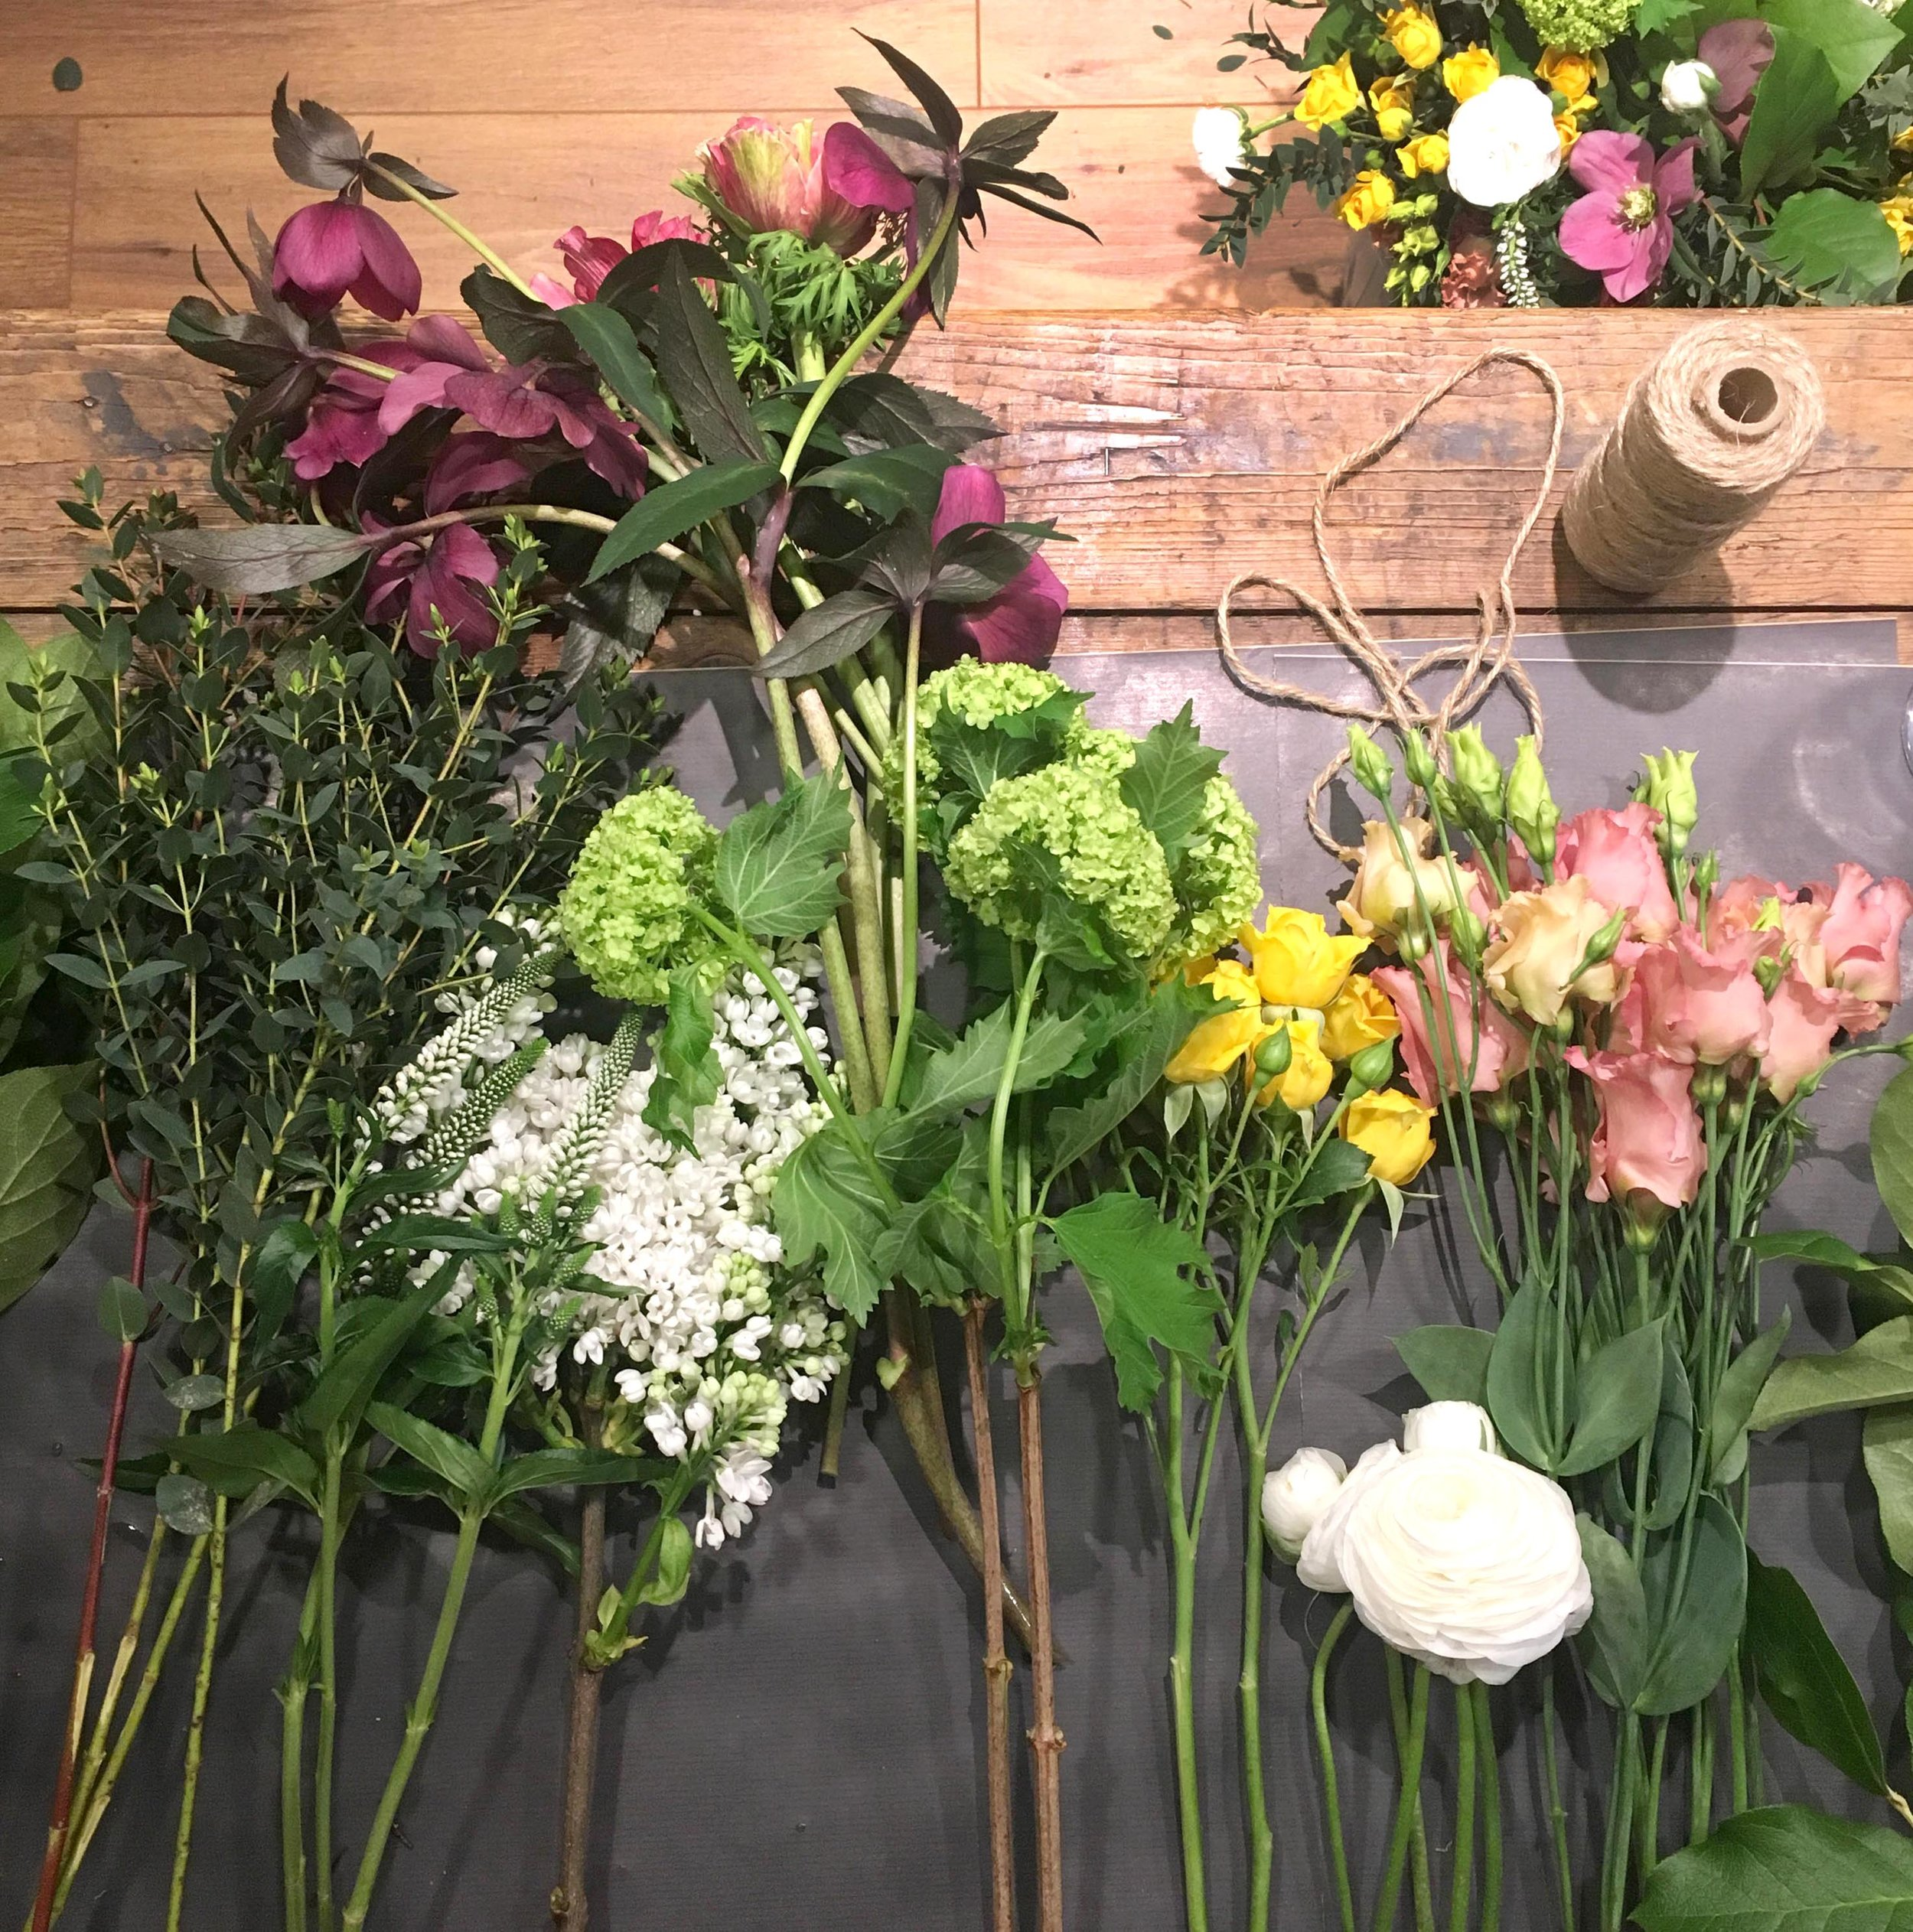 Floral workshop hosted by Inspired Collective at Sarah and Bendrix